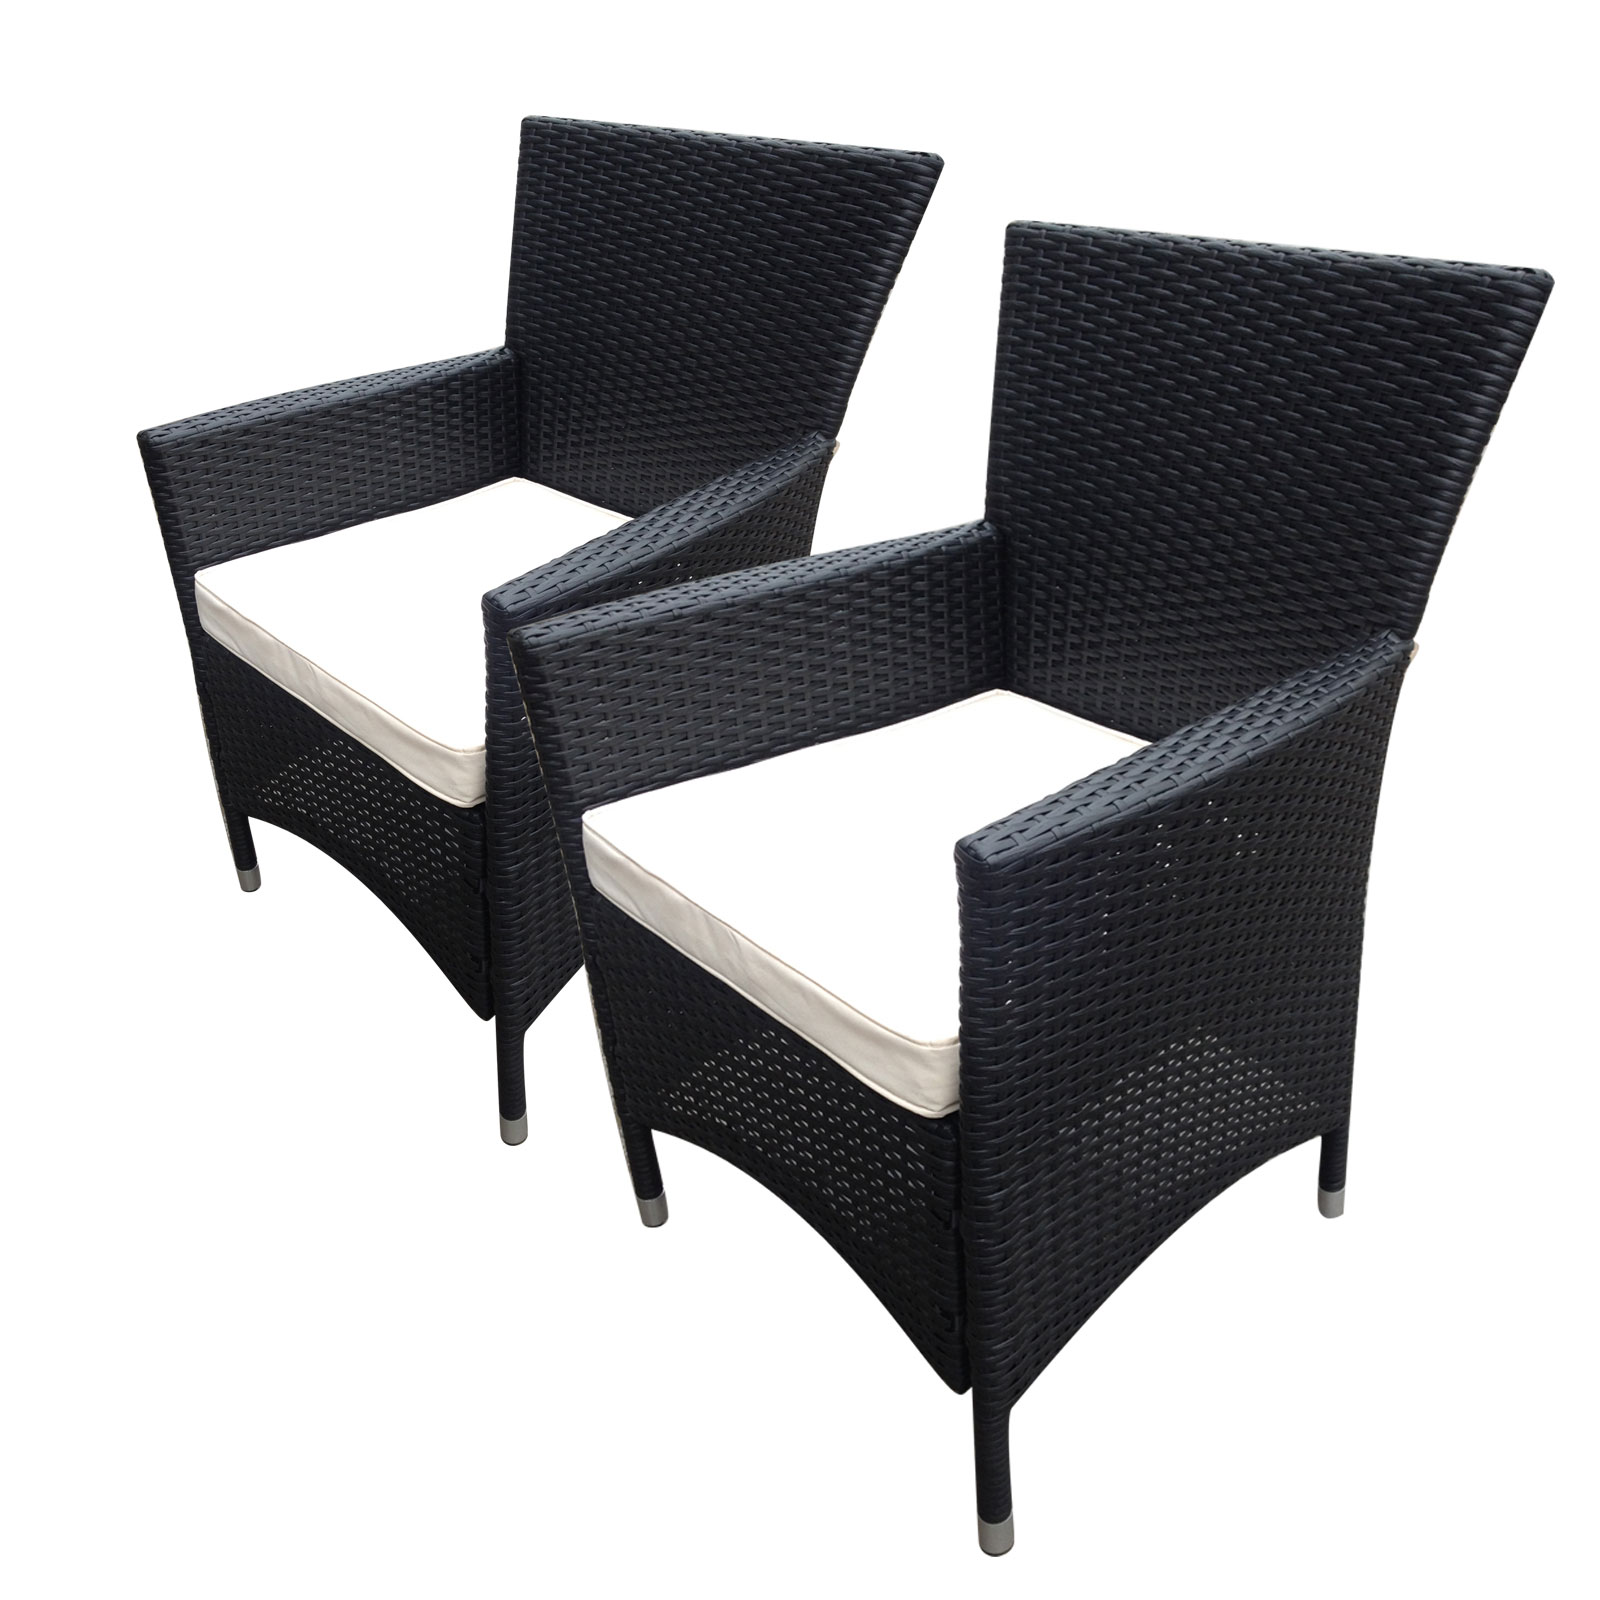 Bentley Garden Indoor Outdoor Pair Of Rattan Armchairs 2 ...